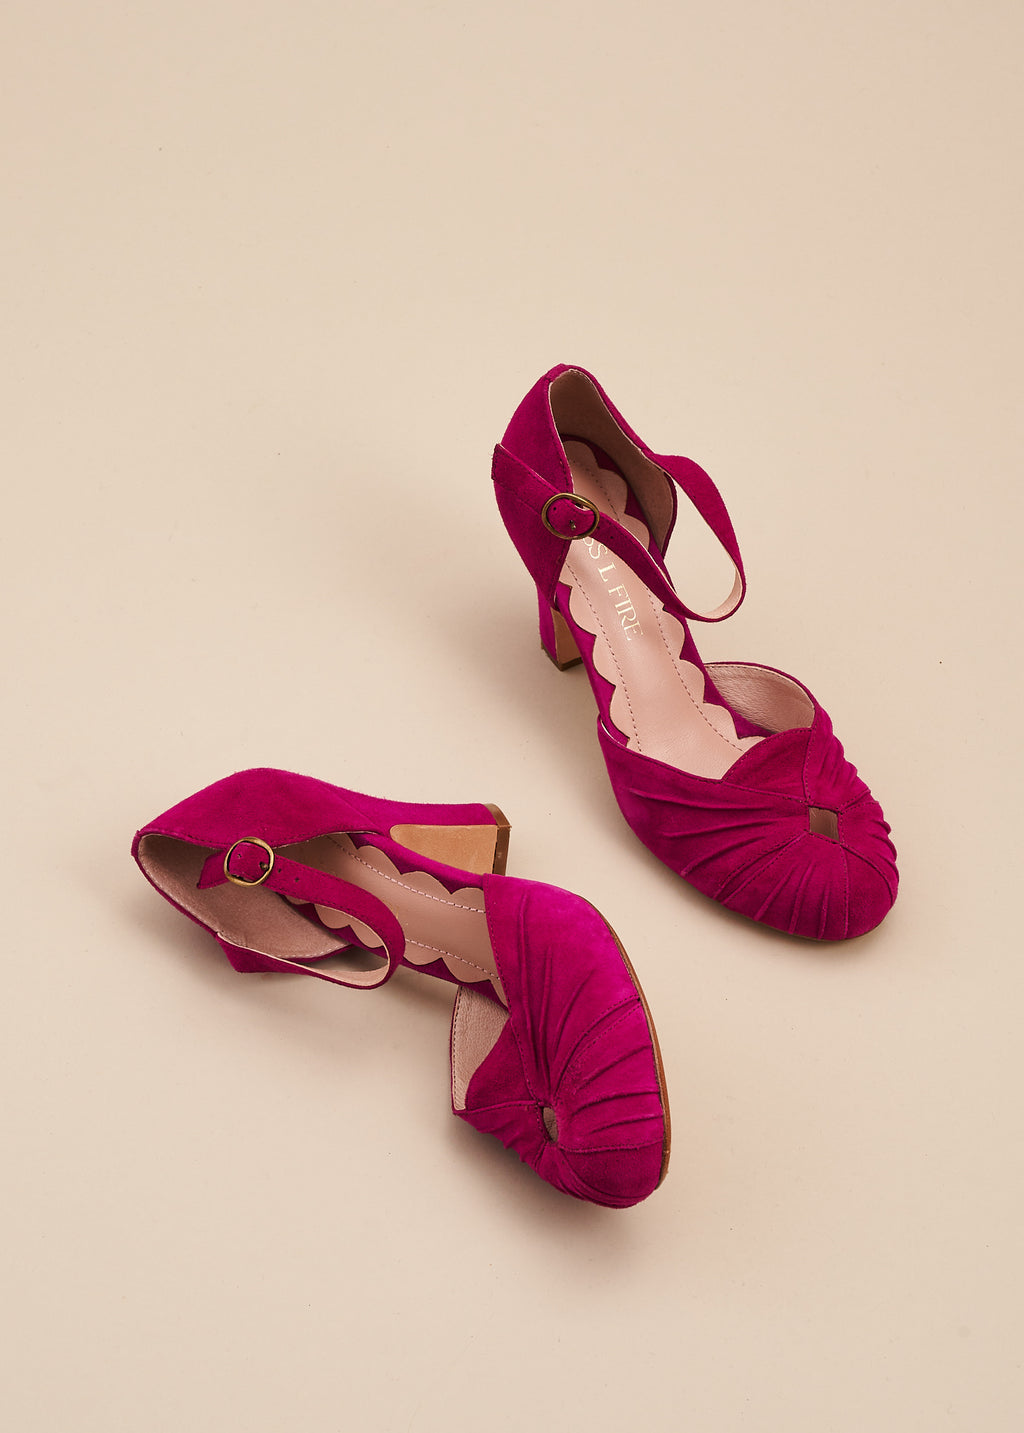 Amber in jewel-like violet suede is a two part, vintage inspired bar shoe by designer Miss L Fire. Amber features an 8cm heel, ruched detail on the toe and an adjustable strap.